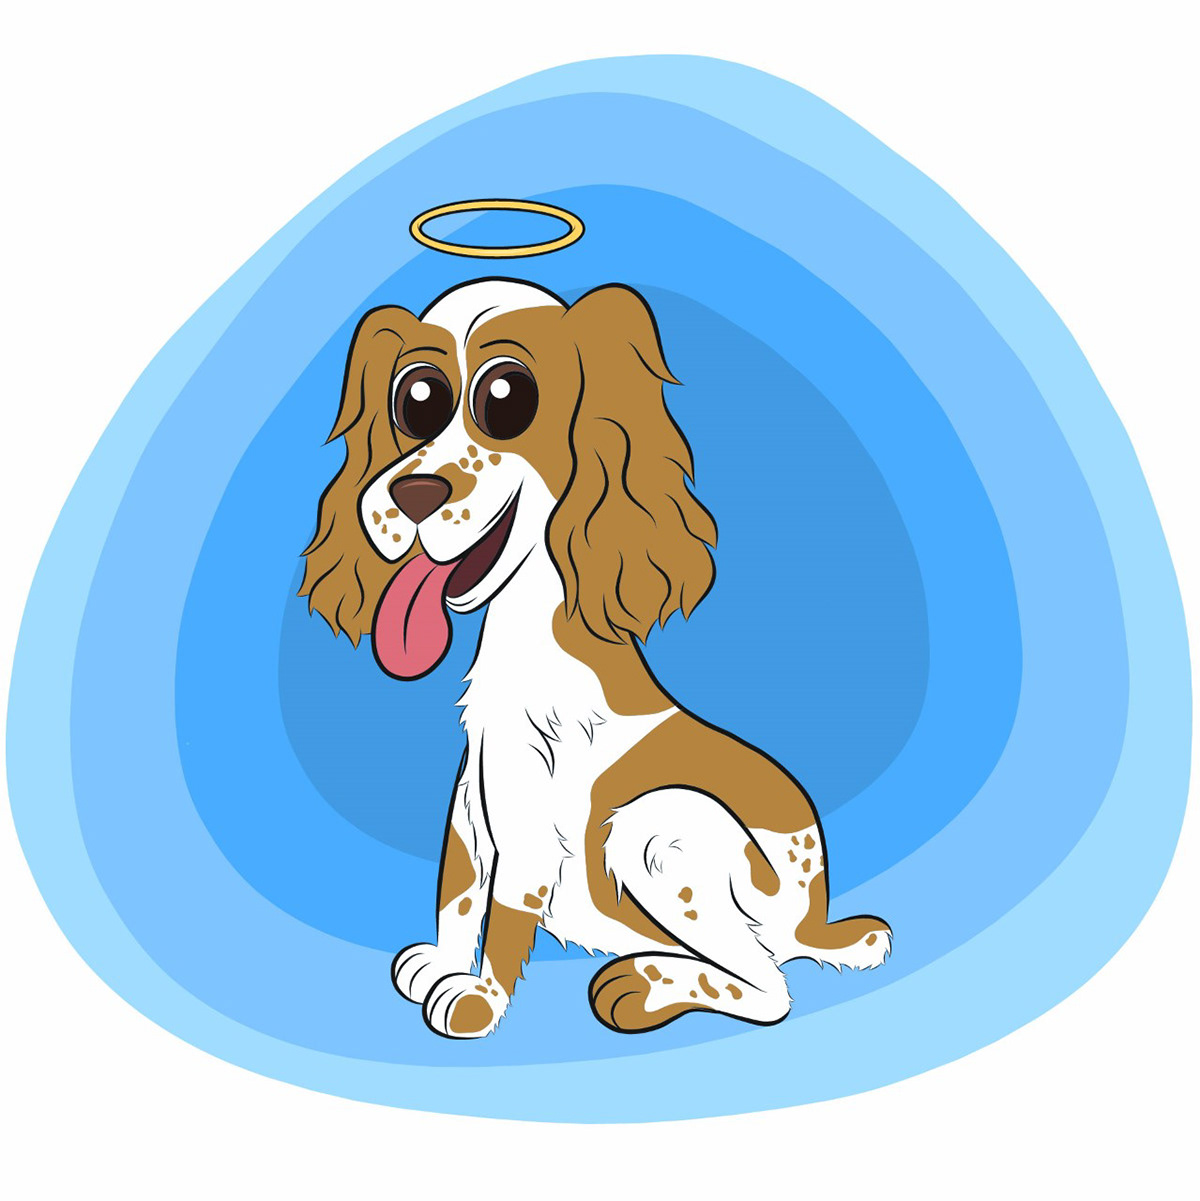 White and brown Coker Spaniel dog